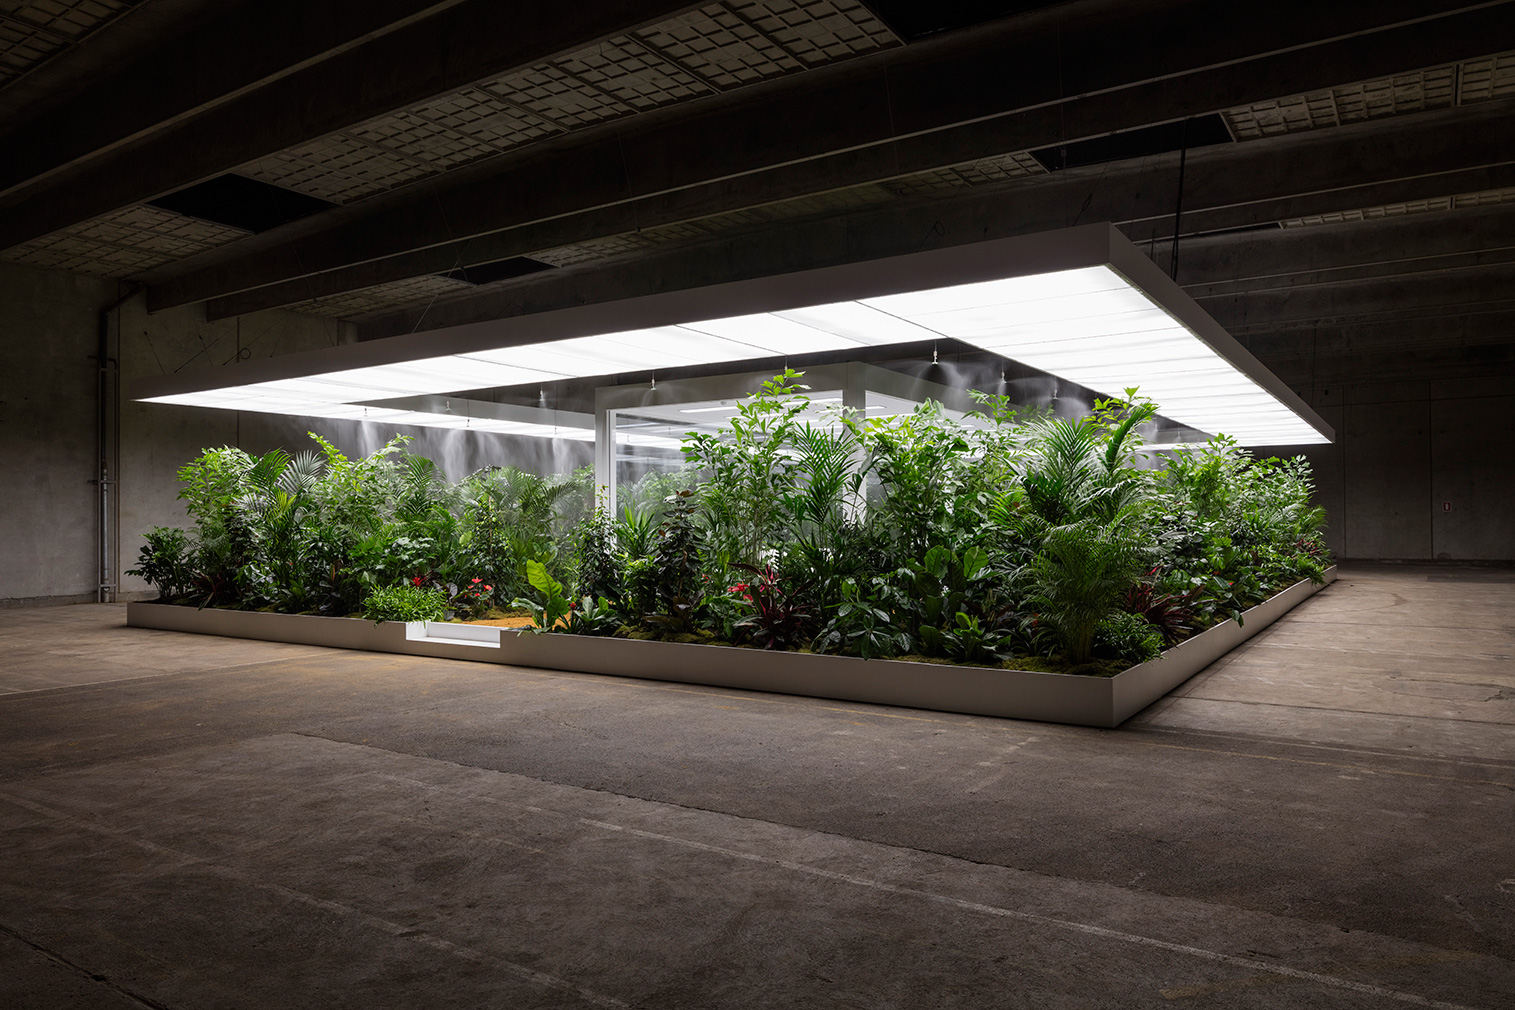 Doug Aitken's The Garden installation at ARoS Triennale in Aarhus